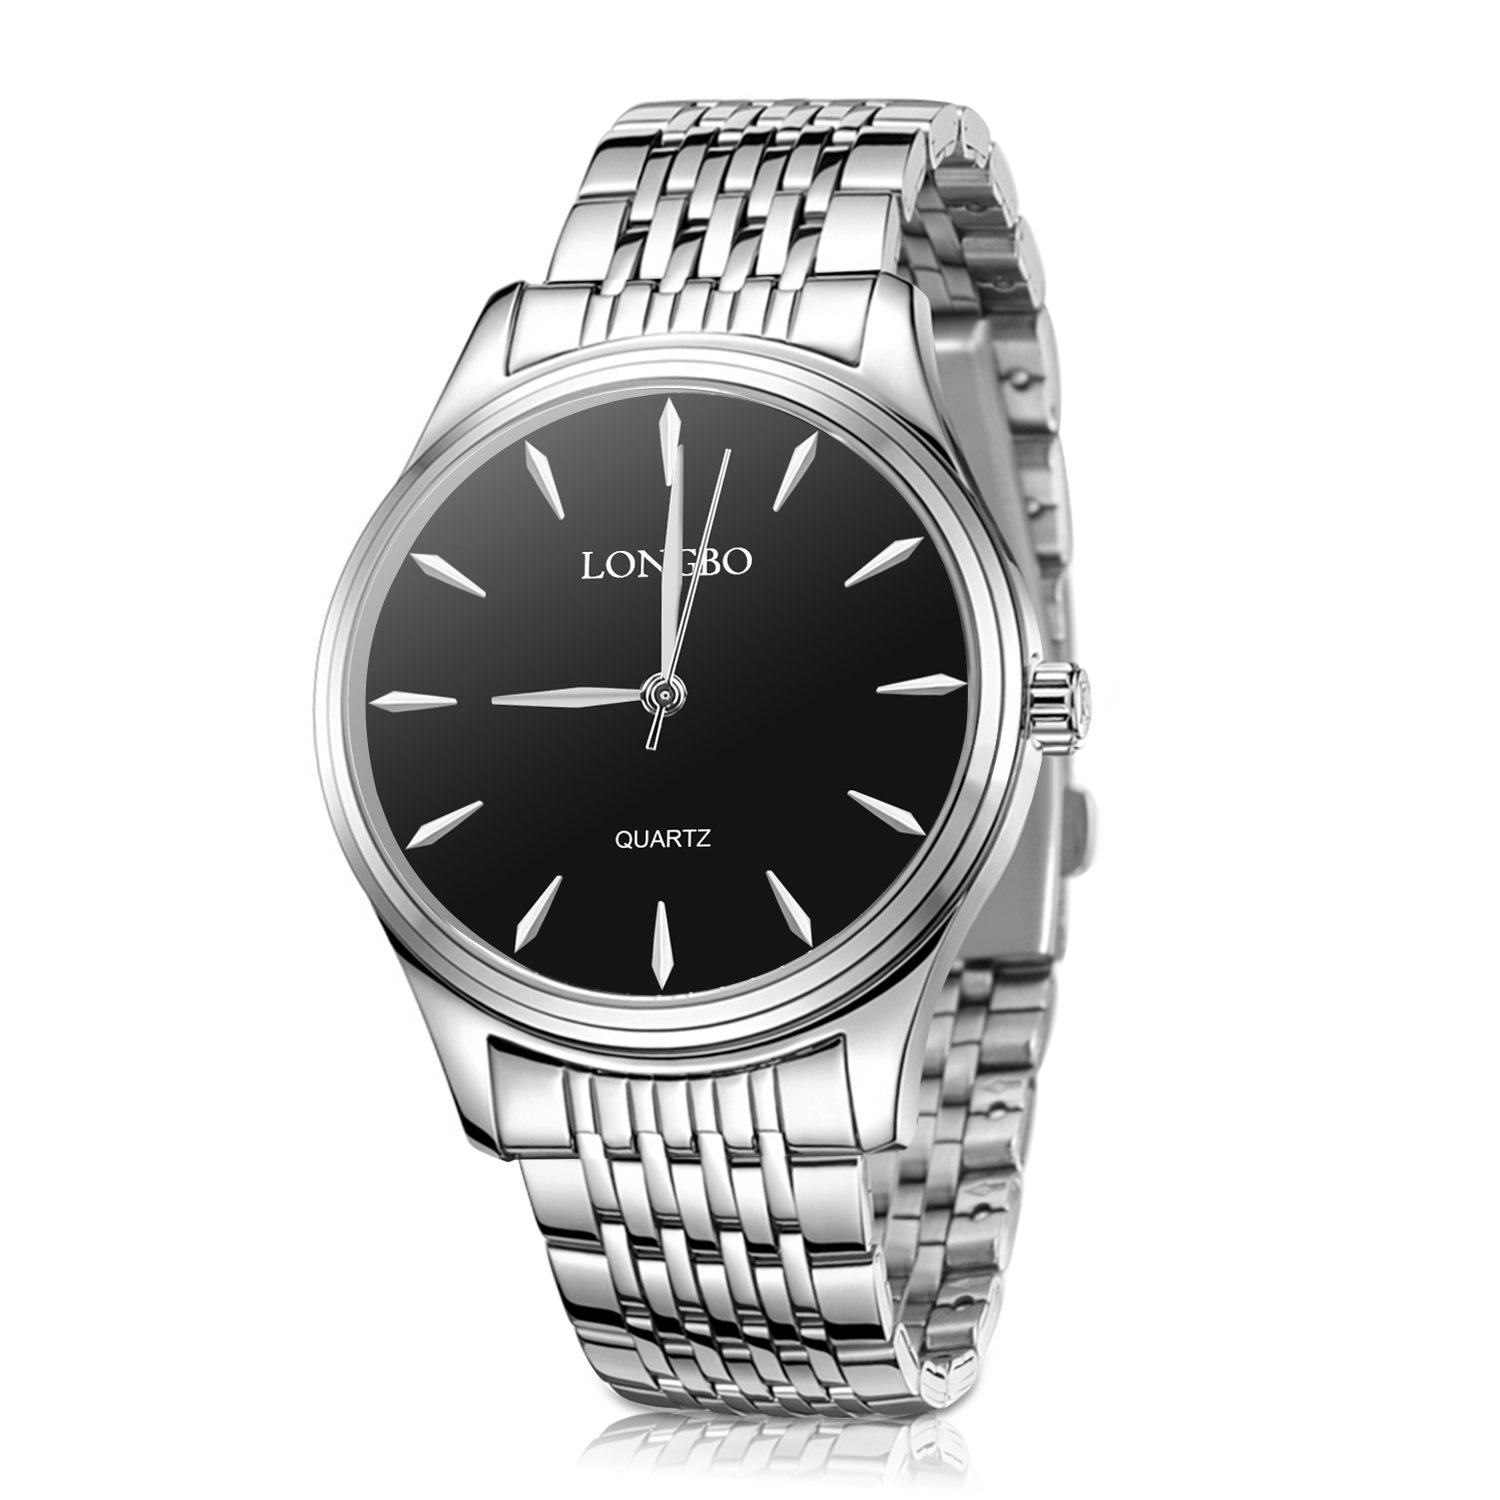 XINYIXING Mens Womens Watches,Couple Stainless Steel Quartz Waterproof Watch for Ladies and Men,Fashion Dress Business Casual Couple Wrist Watches(Women/Men)